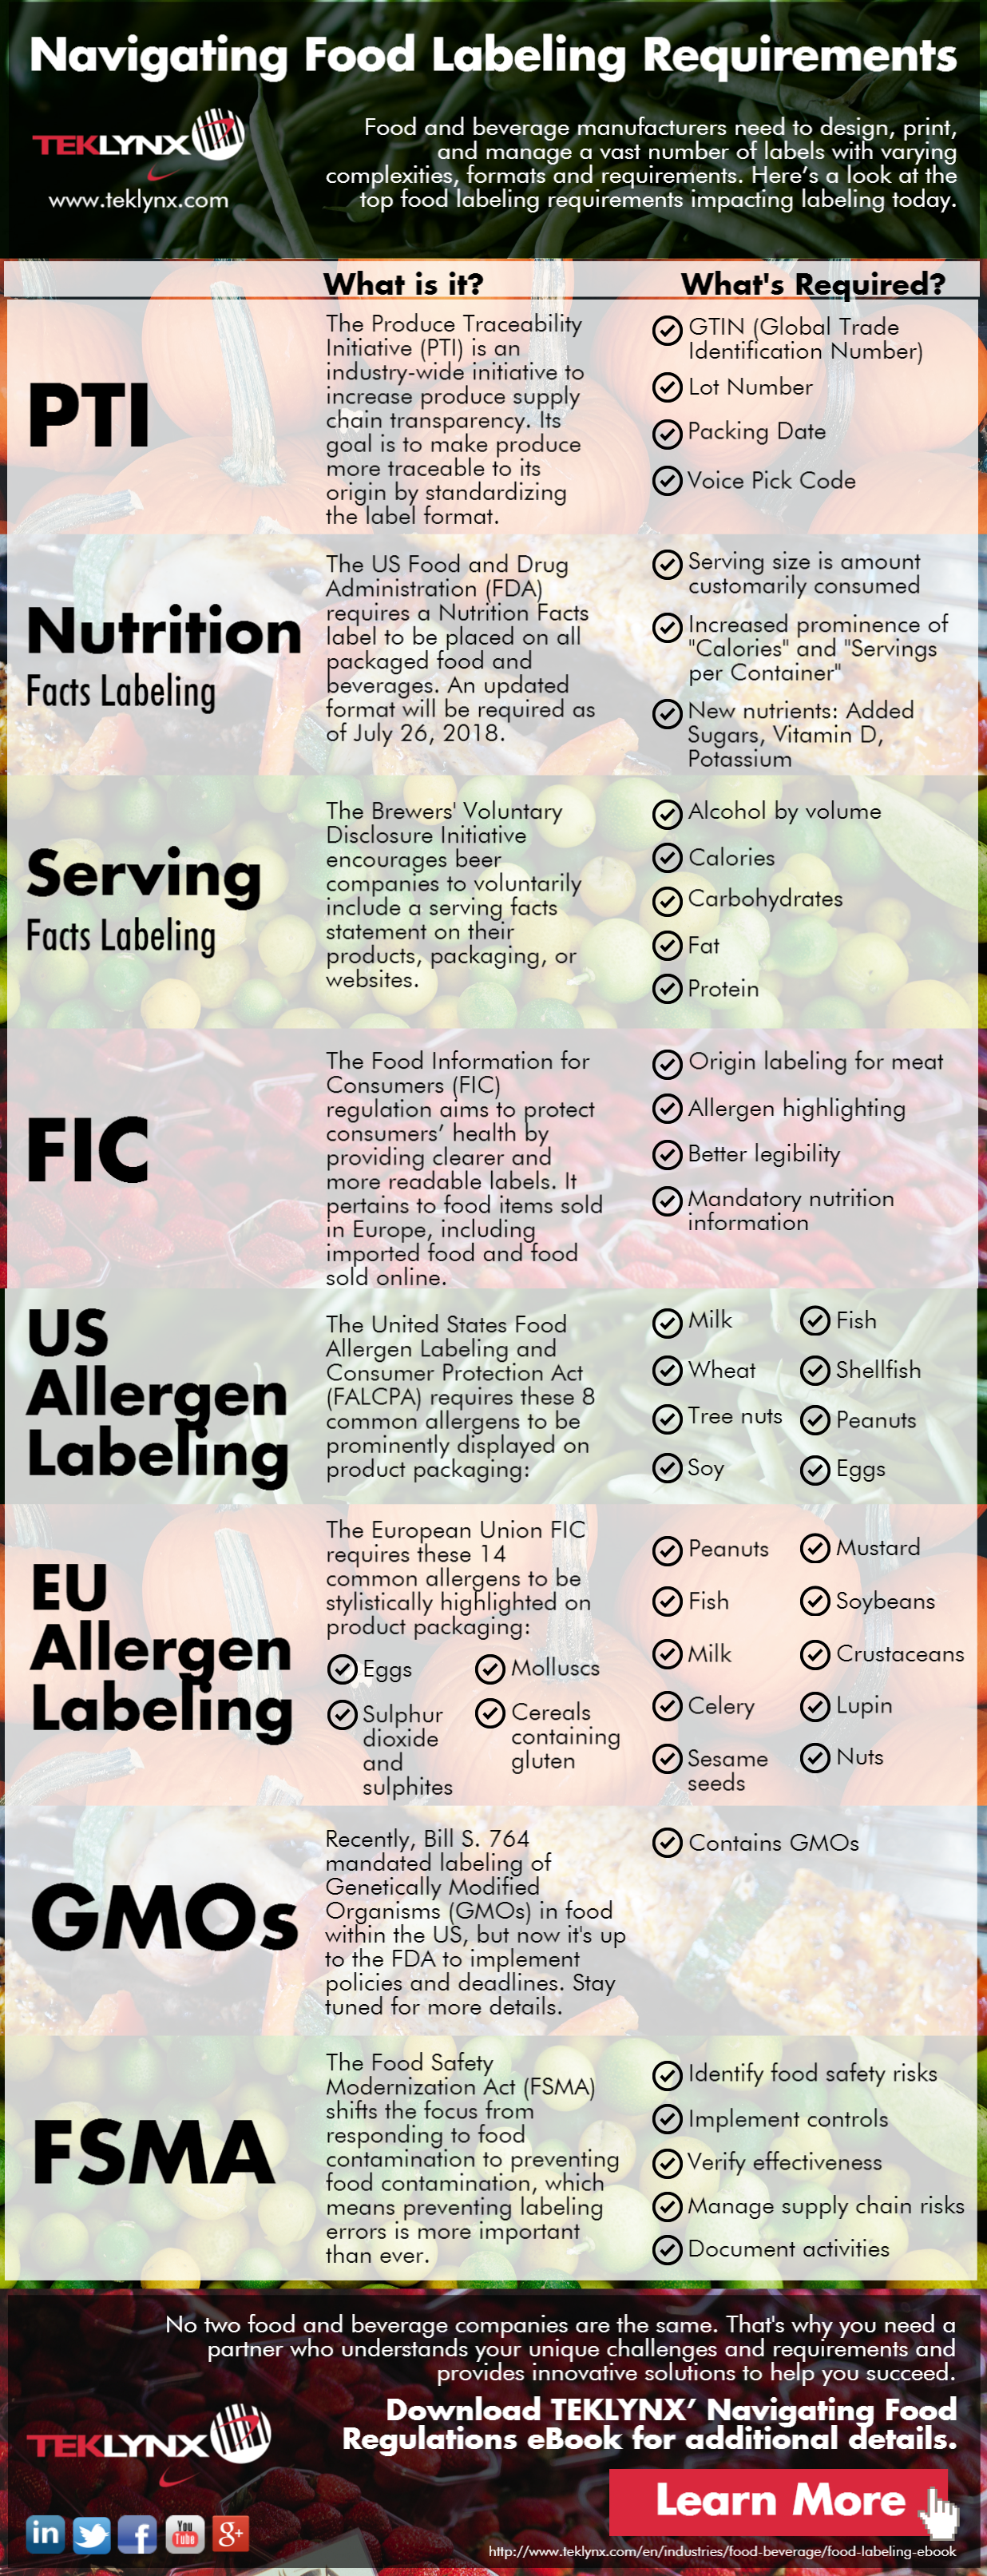 Infographic: Navigating Food Labeling Requirements